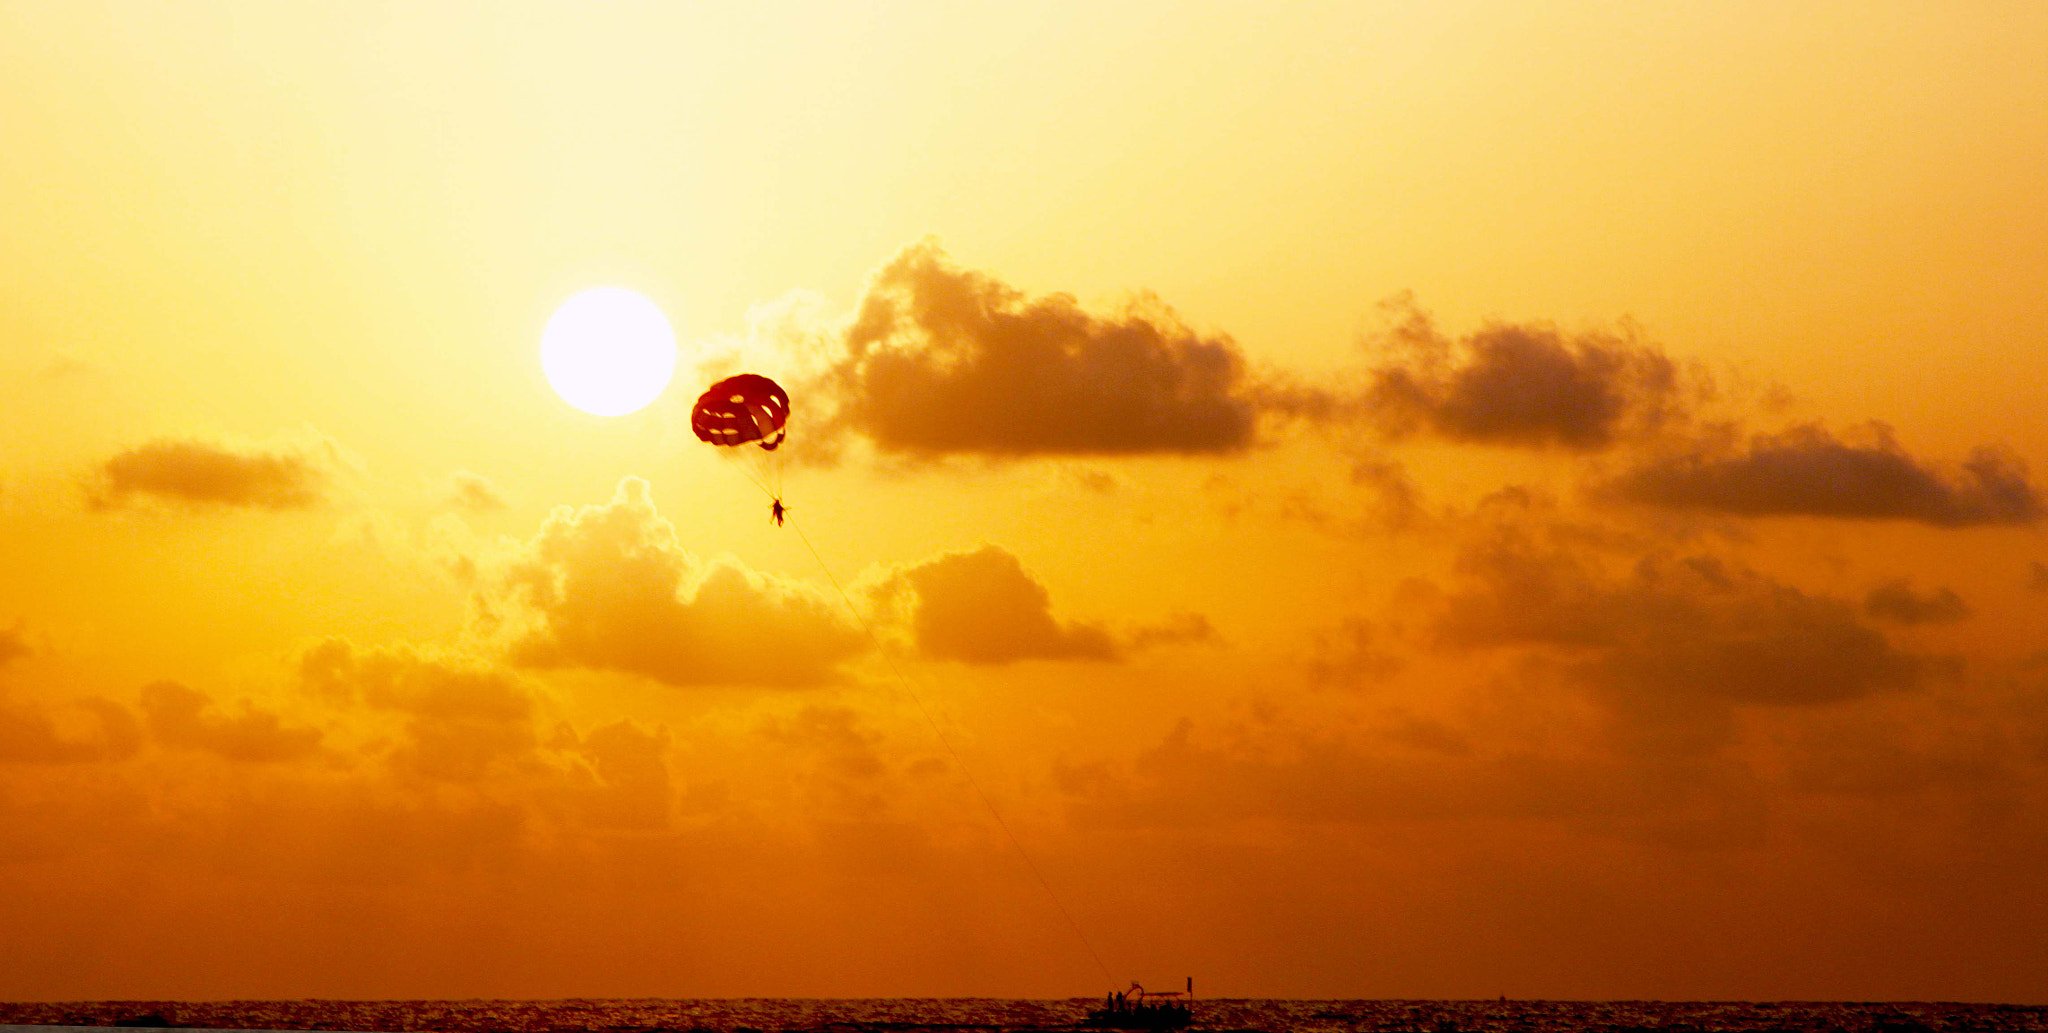 Photograph Touching the Sun by Arnab Banerjee on 500px